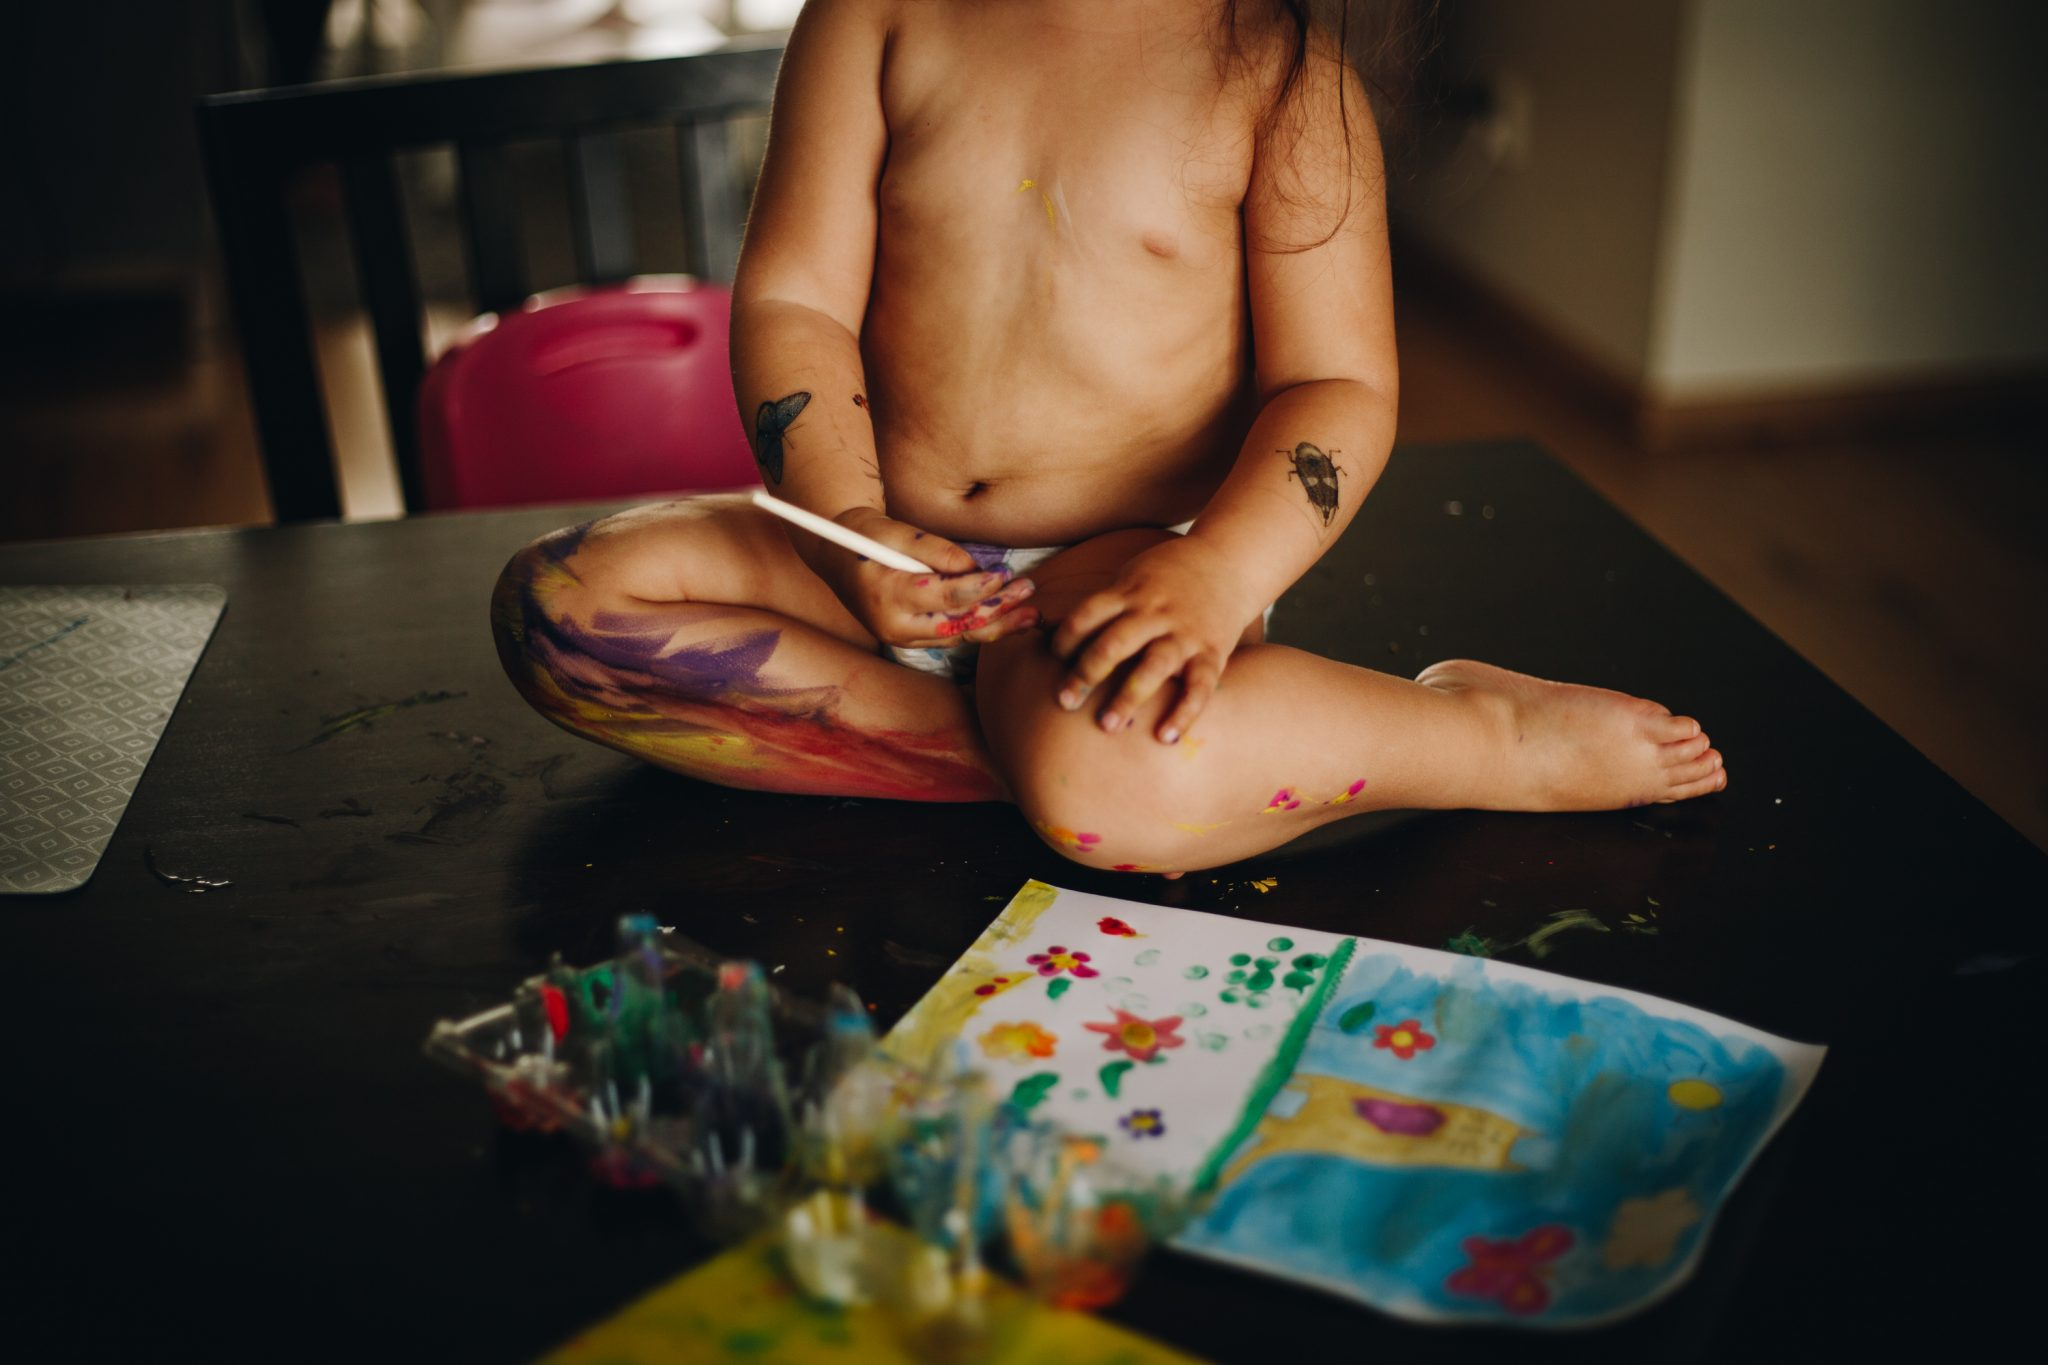 Girl painting herself with tempera sitting on the dinner table. Amsterdam.